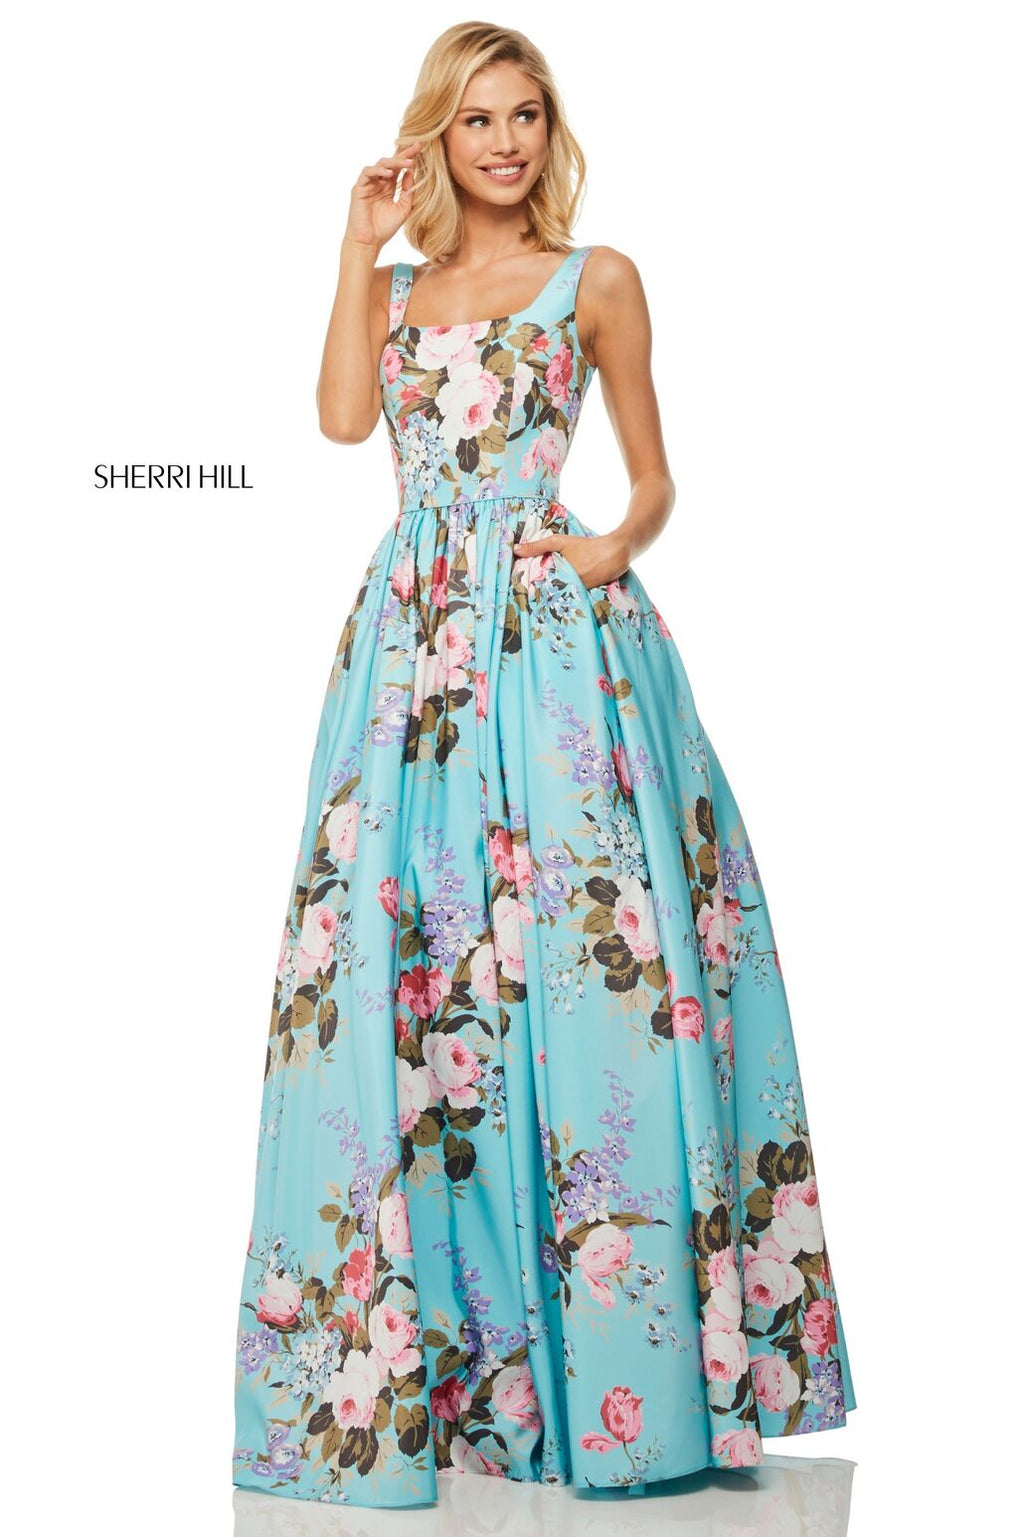 This Sherri Hill 52814 aqua A-line gown has a floral print and a tank bodice.